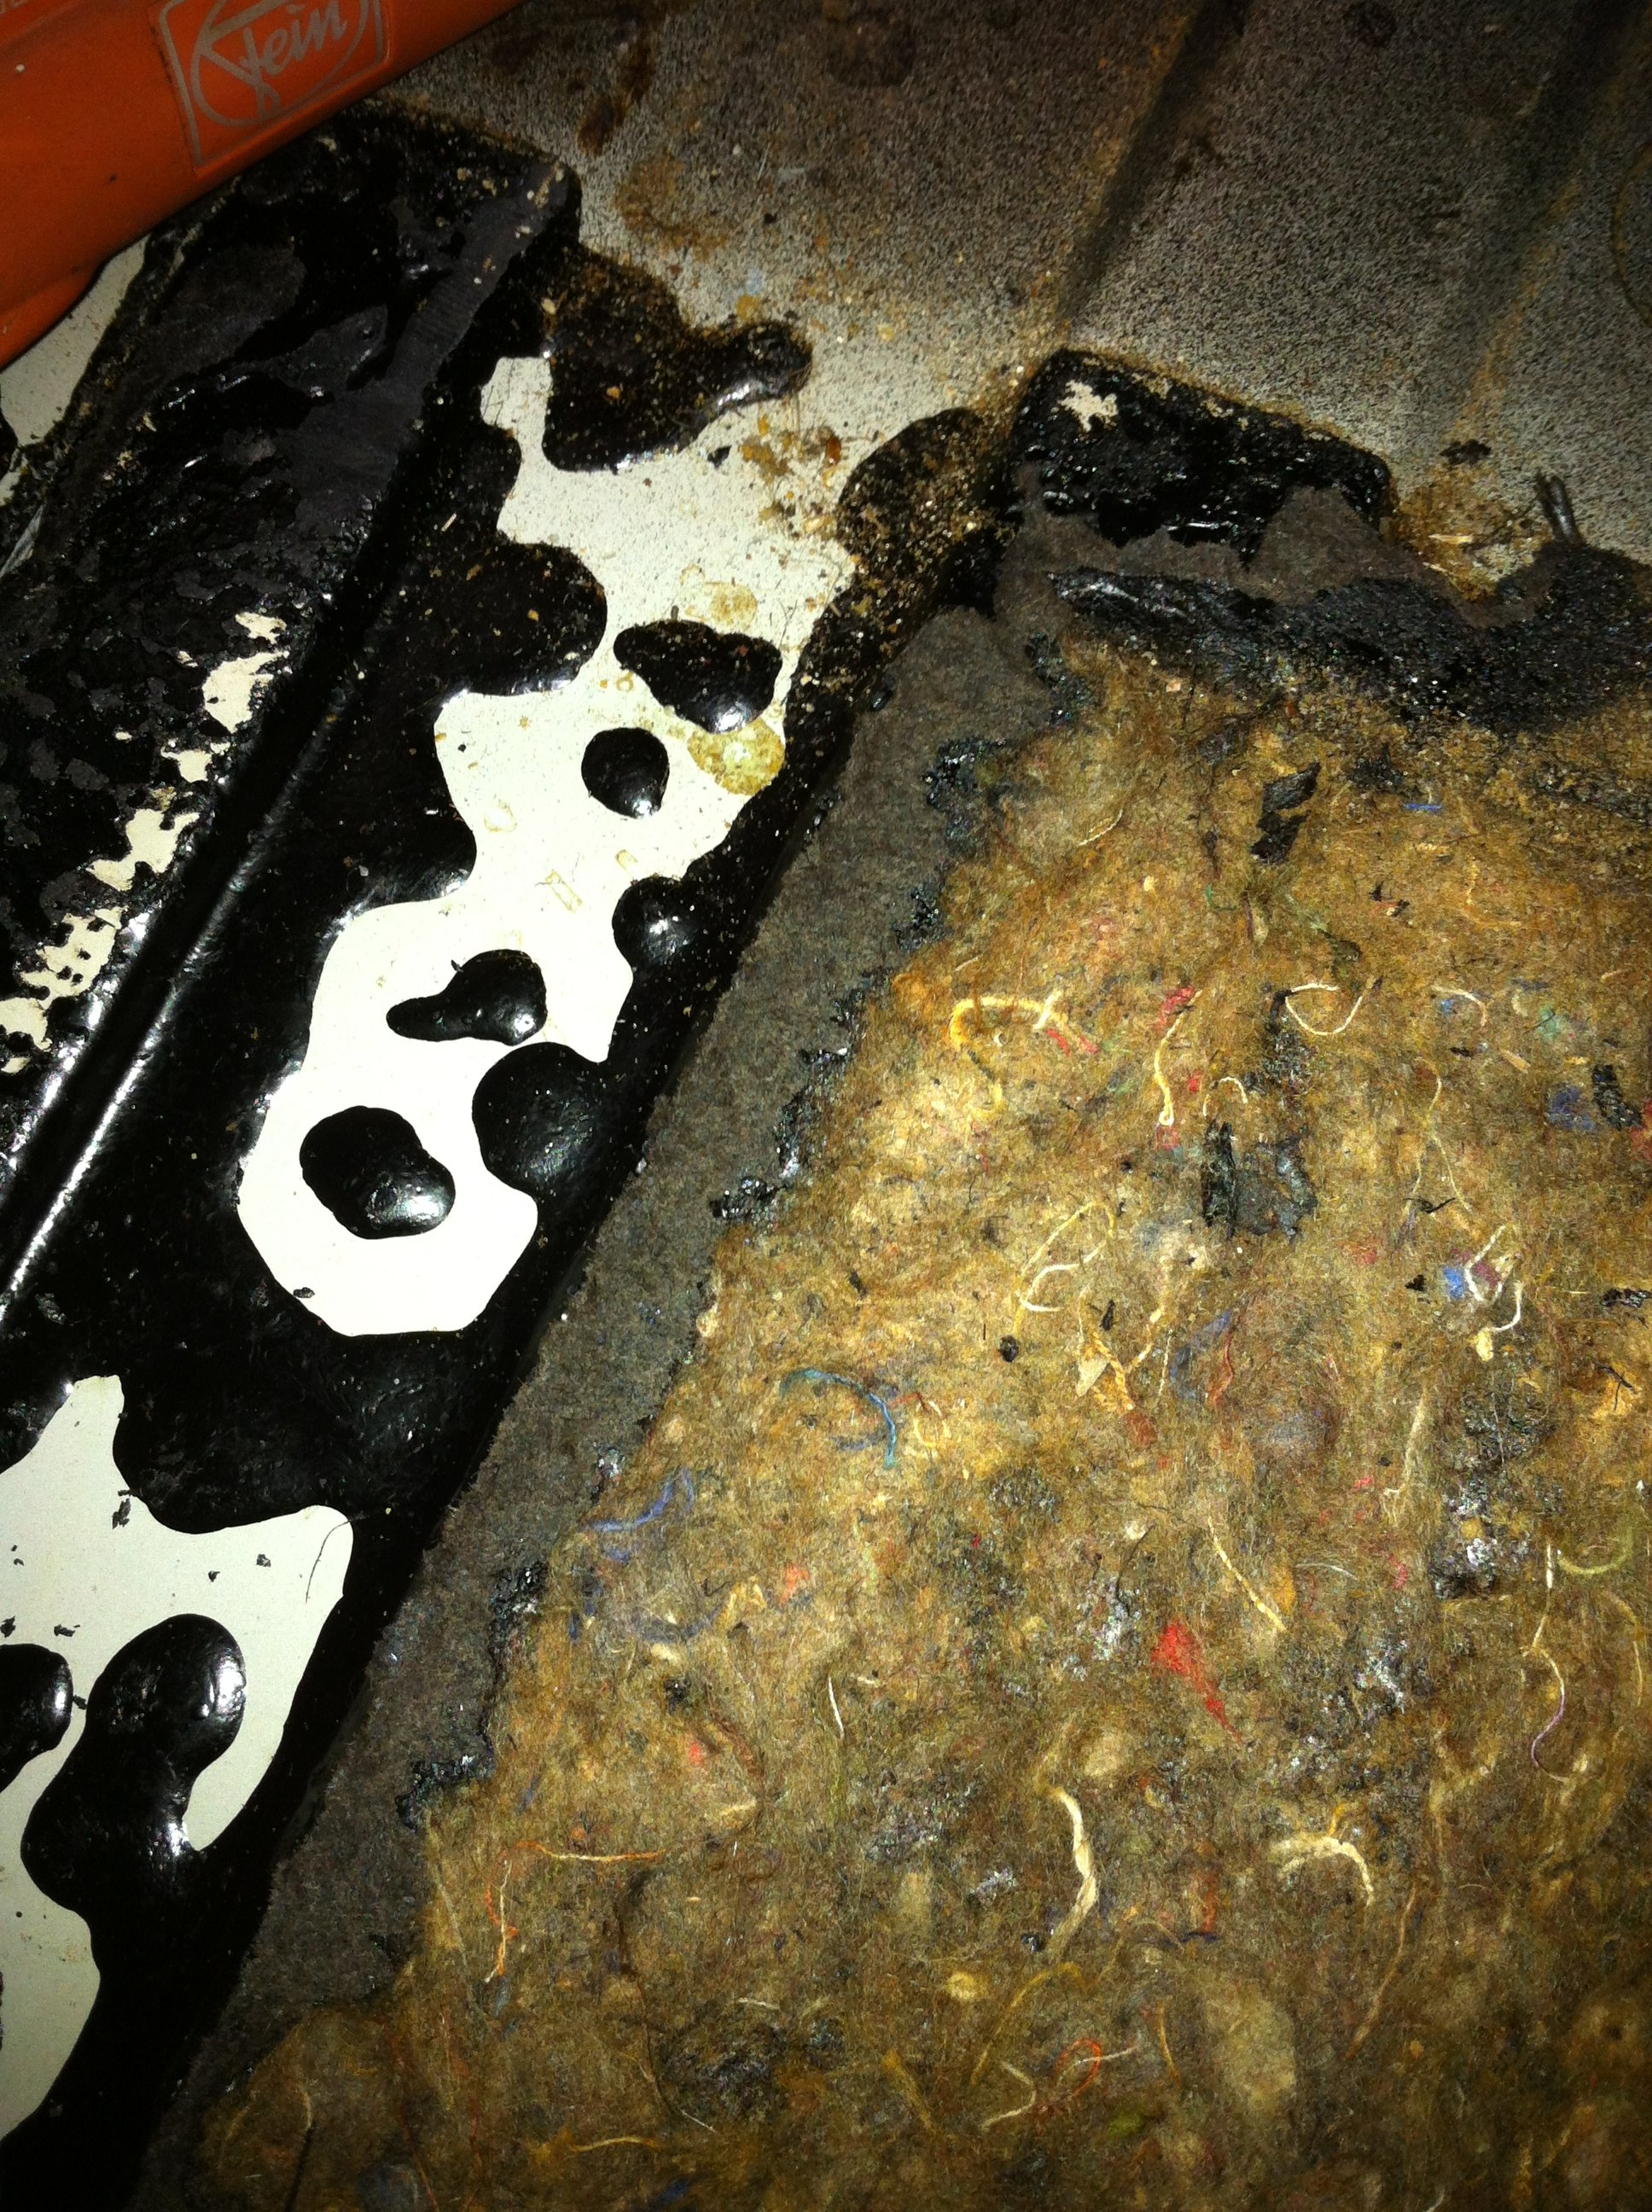 The metal is pristine under the insulation, it was installed with some very thick black tar which appears to have successfully prevented any rust at all :-)